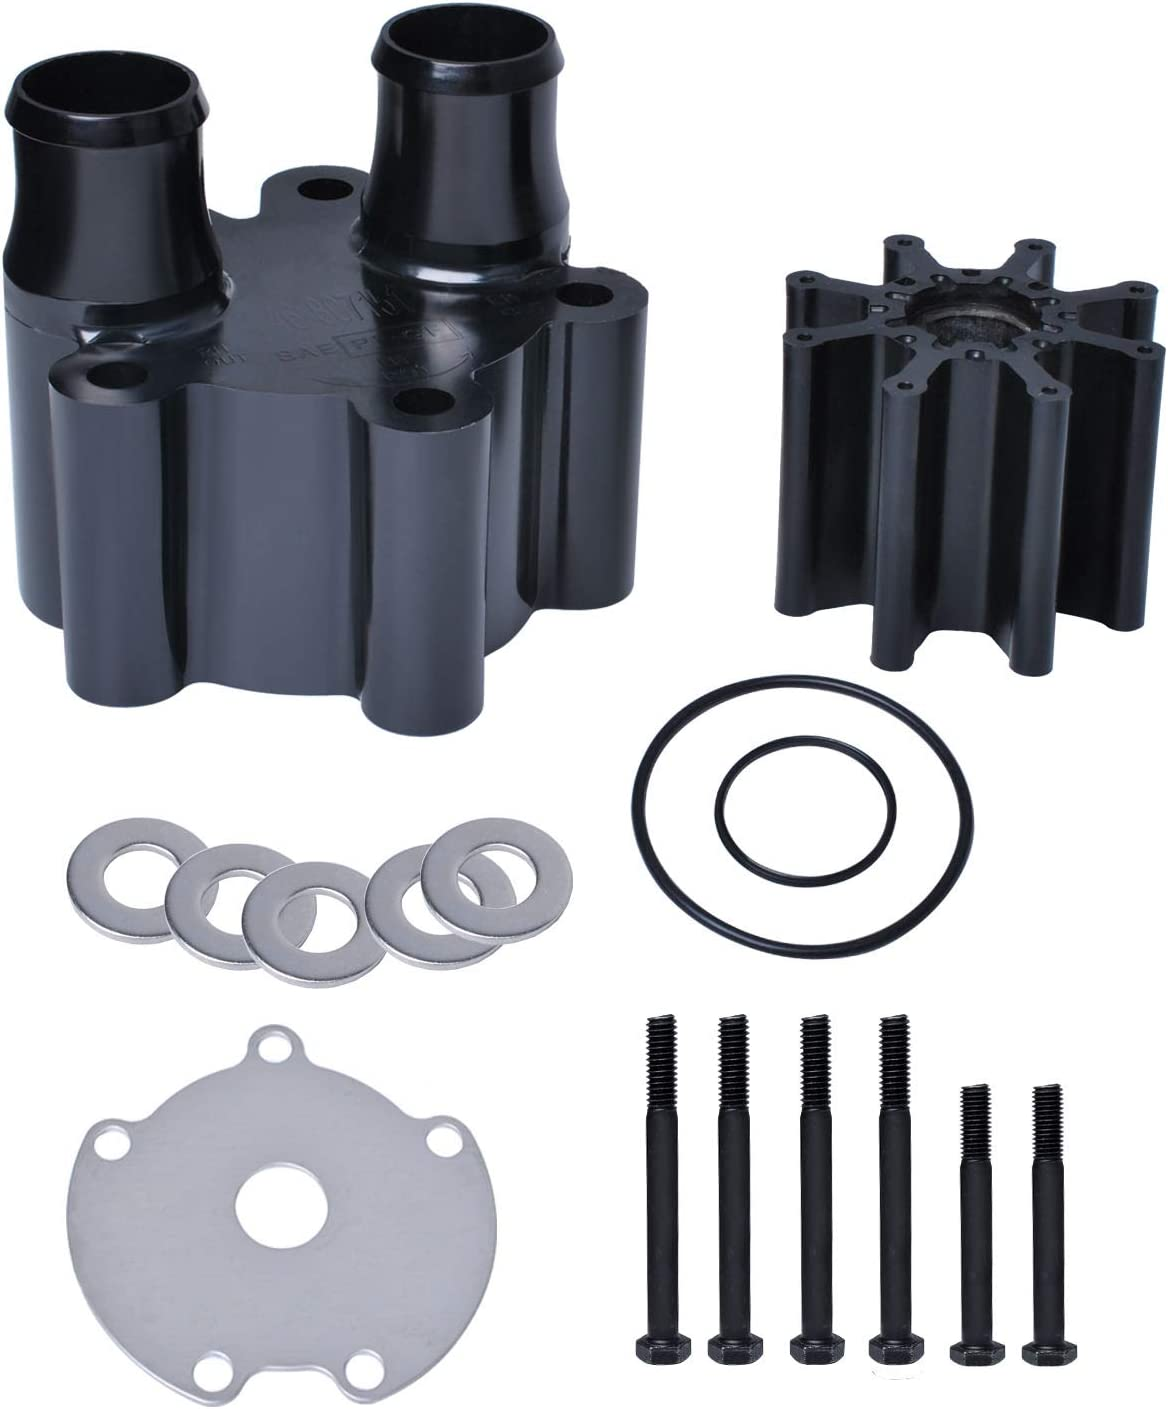 46-807151A14 Water store Pump Impeller Louisville-Jefferson County Mall Kit W Sea Housing with 18-3150